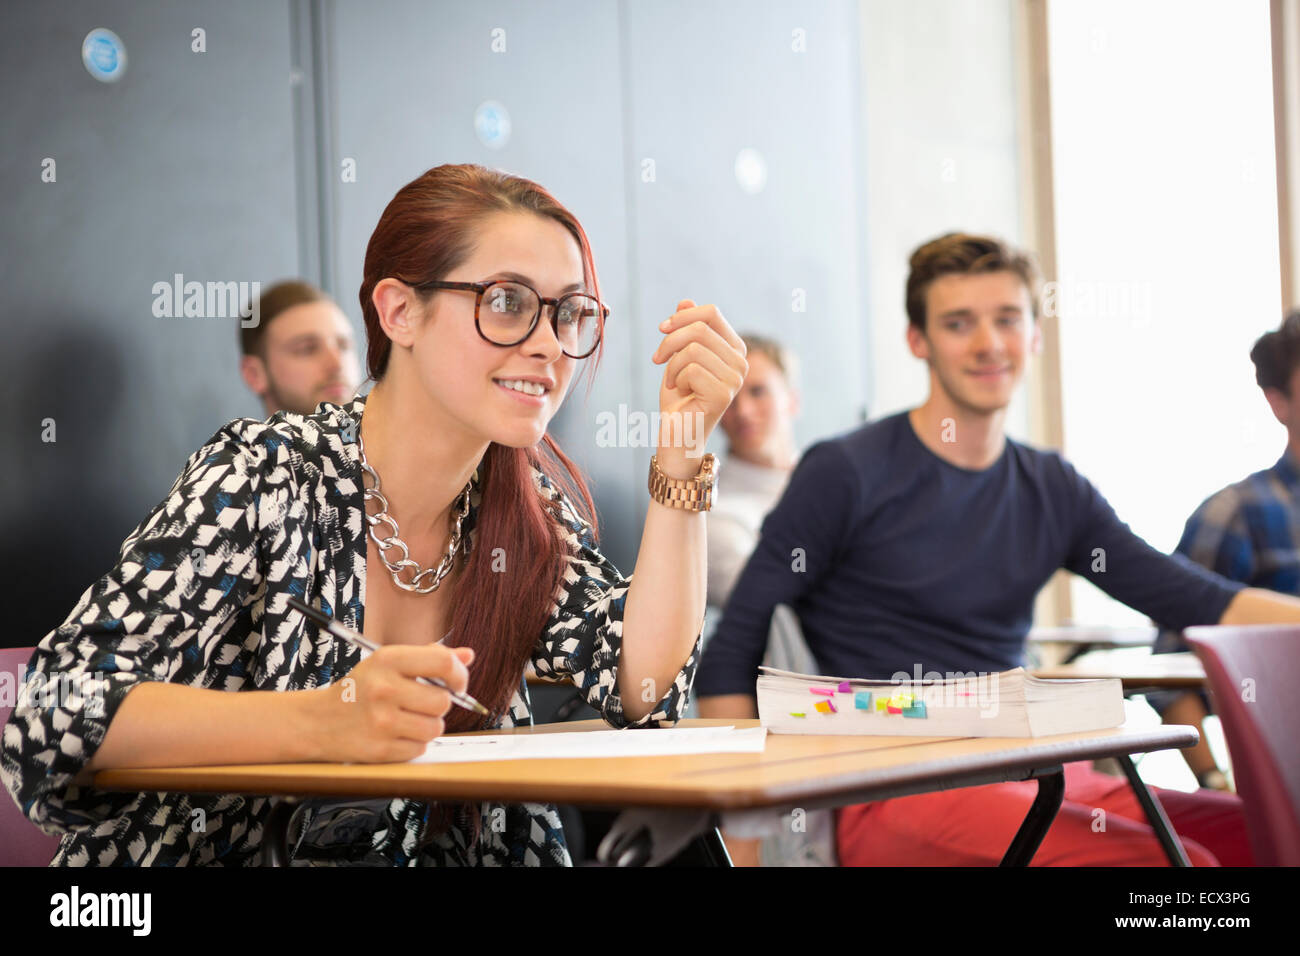 University student taking notes and listening during seminar in classroom - Stock Image